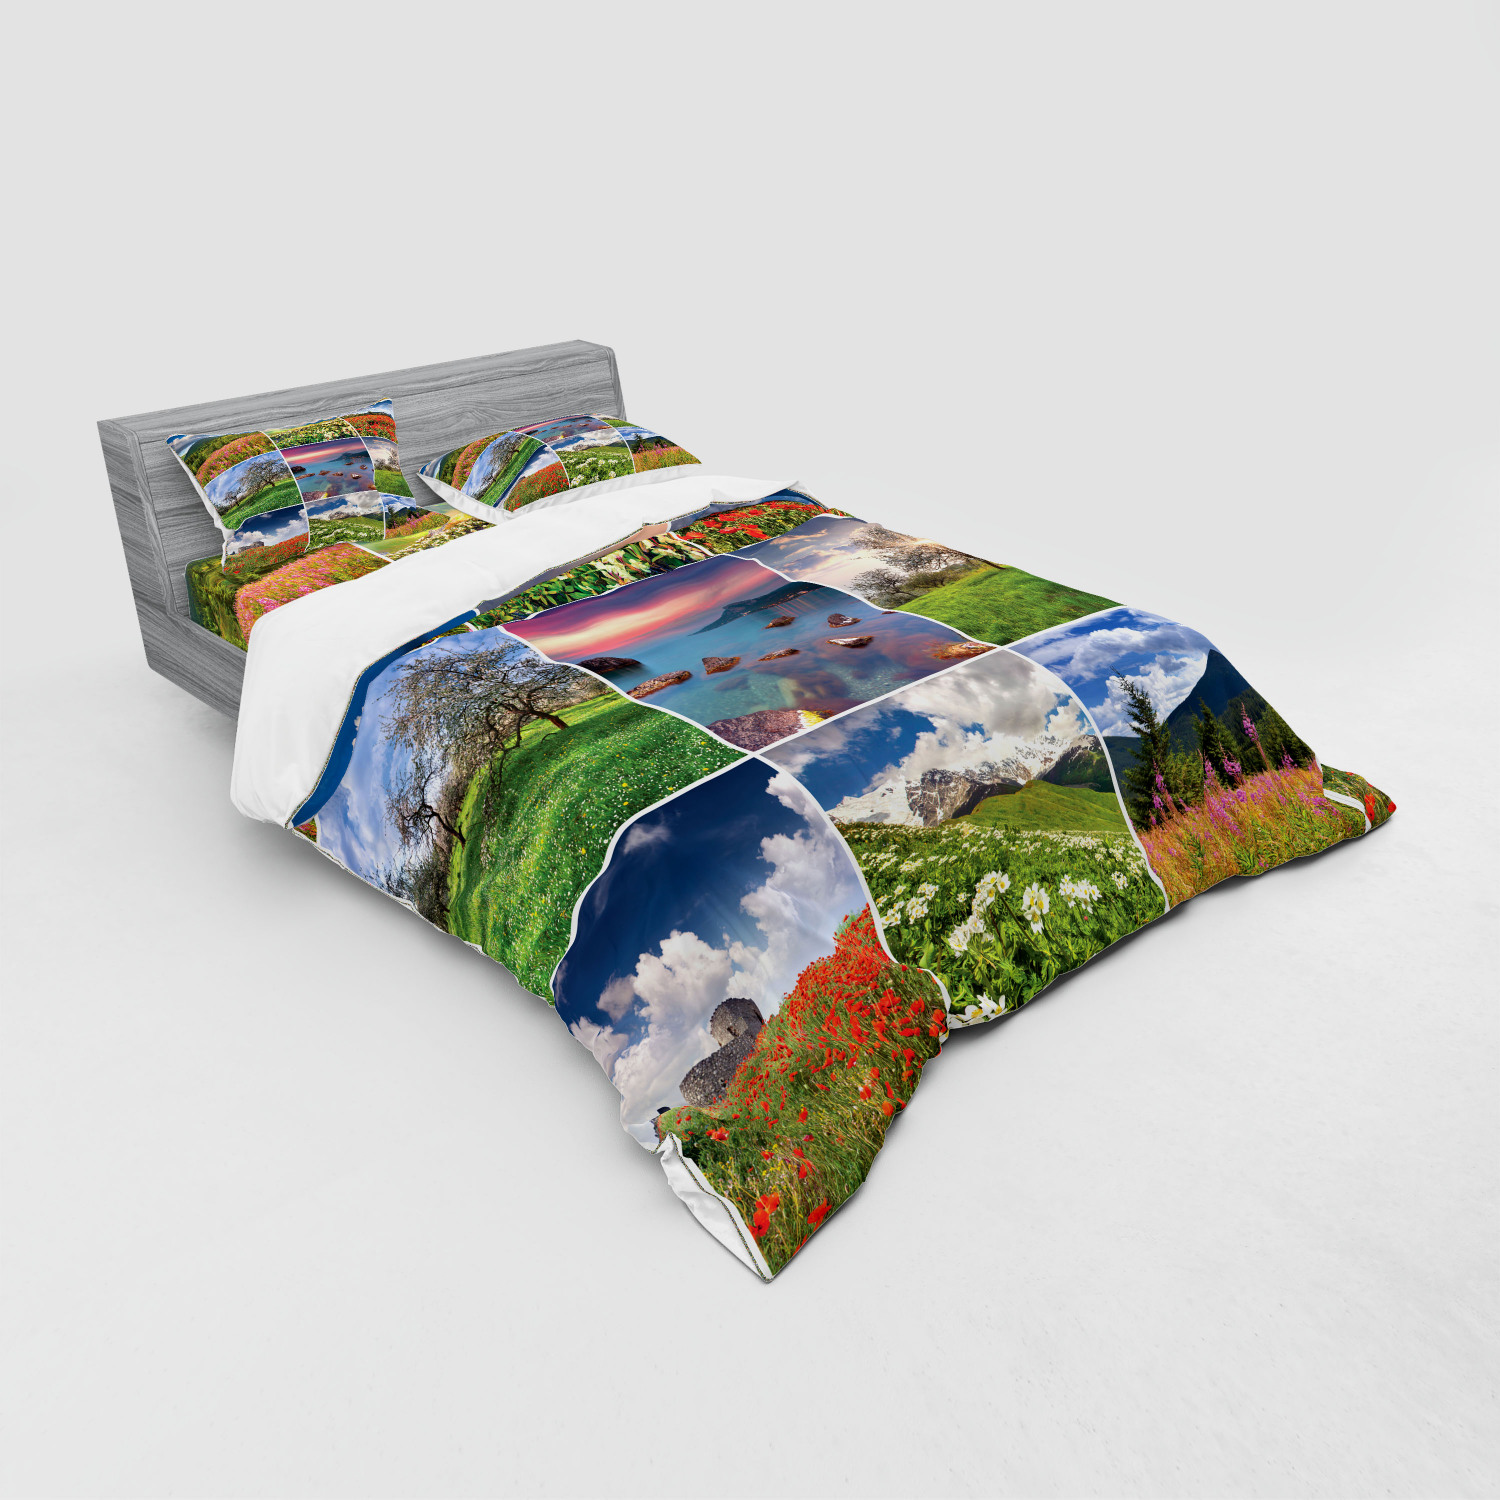 thumbnail 195 - Ambesonne Summer Bedding Set Duvet Cover Sham Fitted Sheet in 3 Sizes